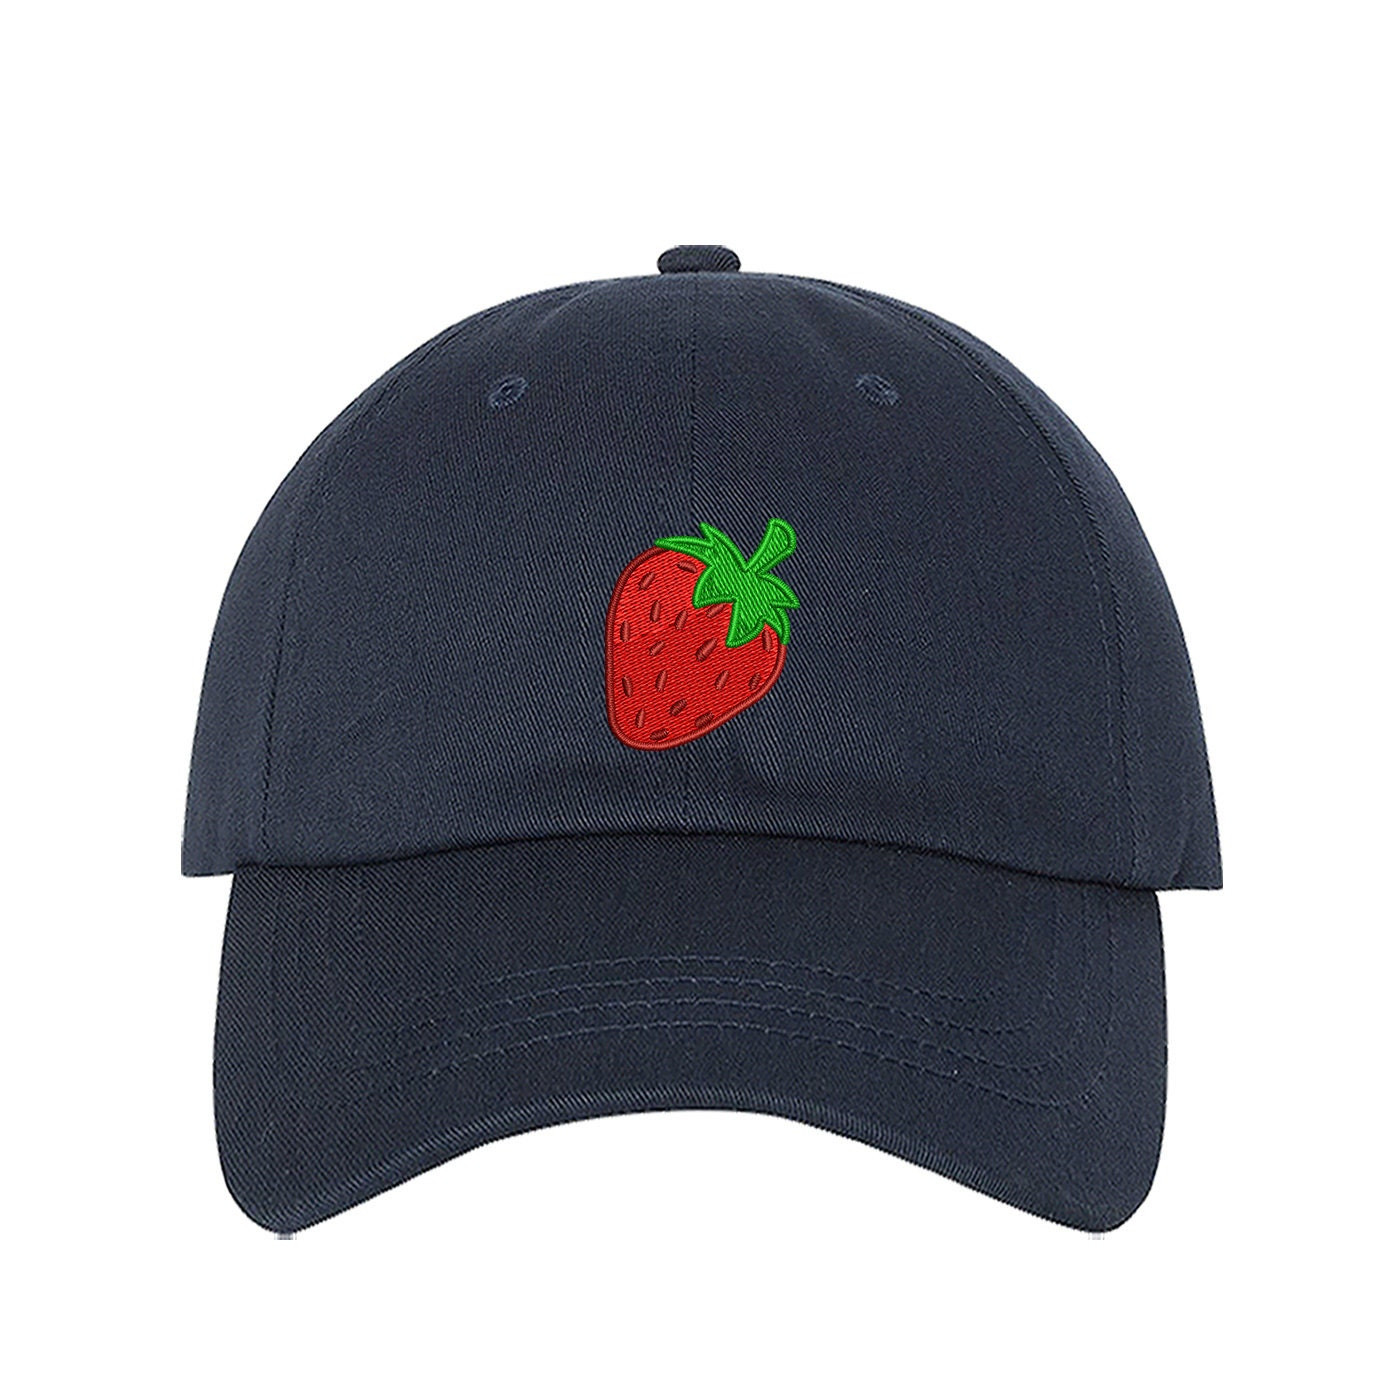 Baseball Hat Strawberry Dad Hat Embroidered Baseball Cap Tumblr Hats ... 3f023a8ad4d0